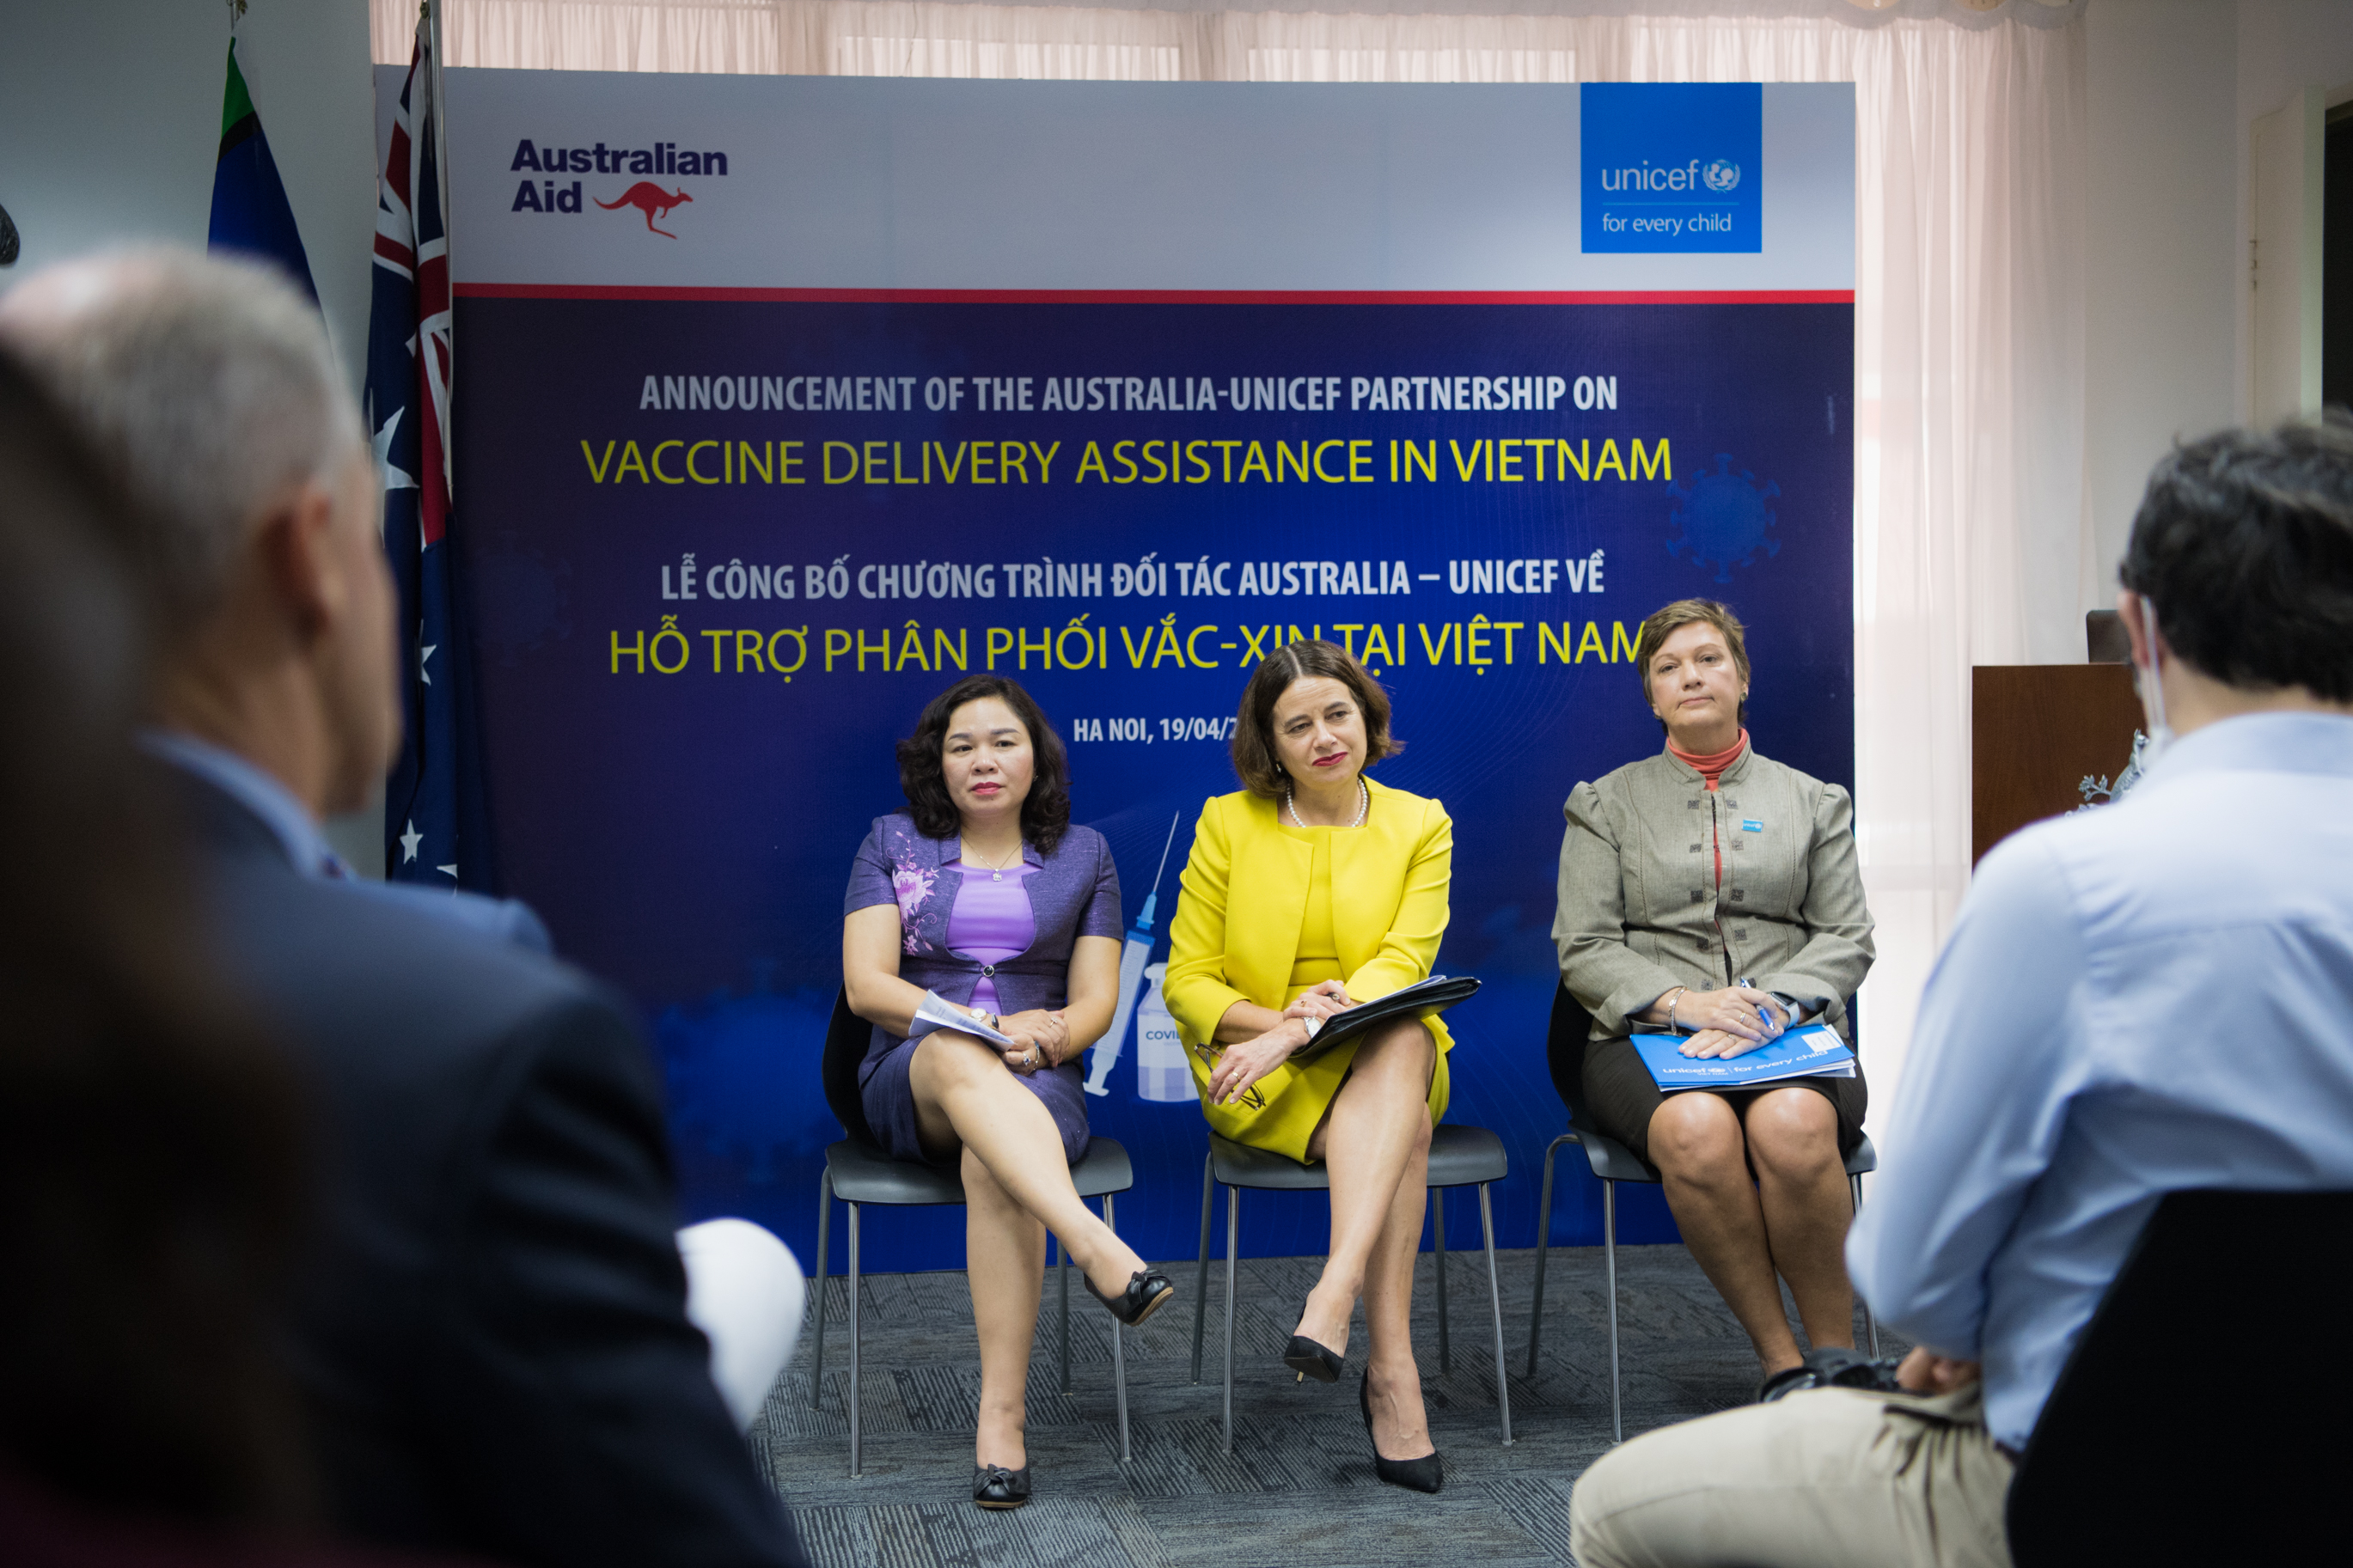 Australia, UNICEF announce $10.5mn package to support COVID-19 vaccine delivery in Vietnam